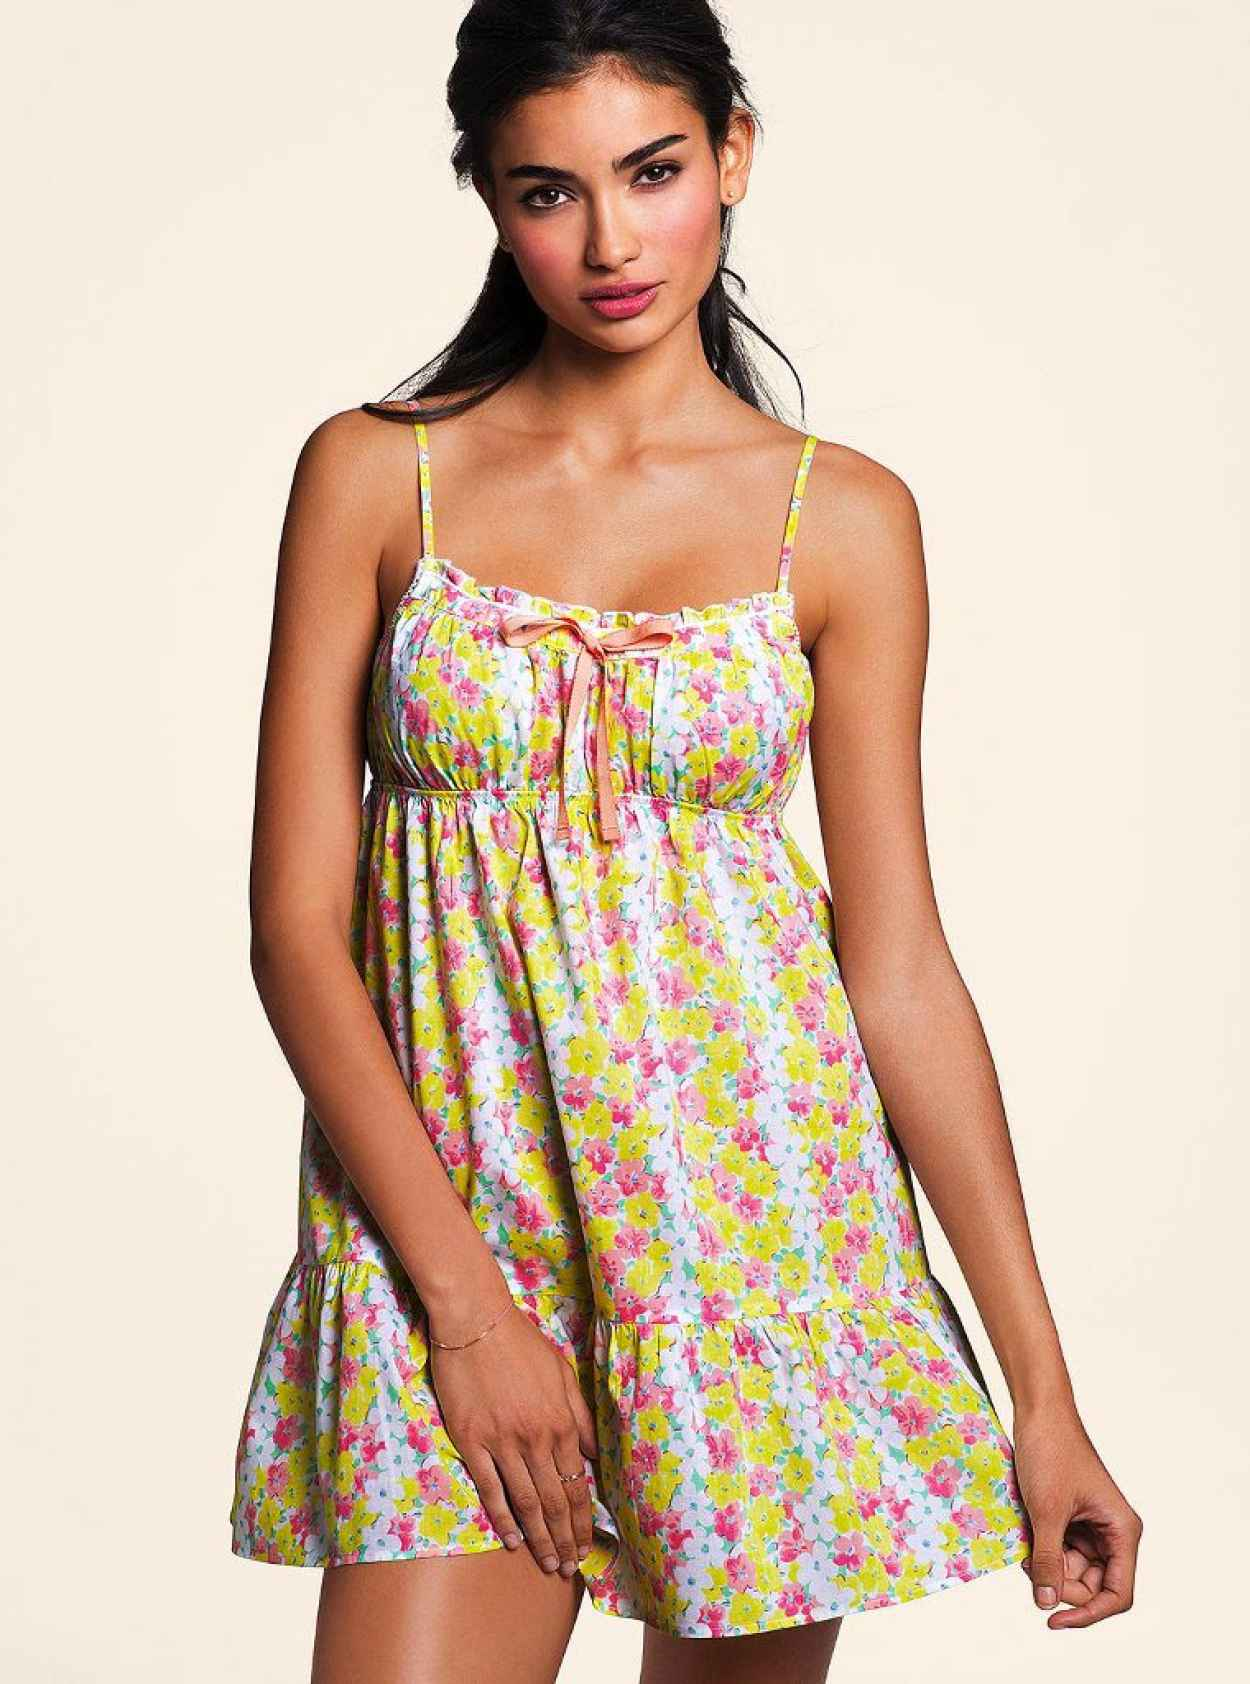 Kelly Gale Photoshoot for Victorias Secret (2014)-1